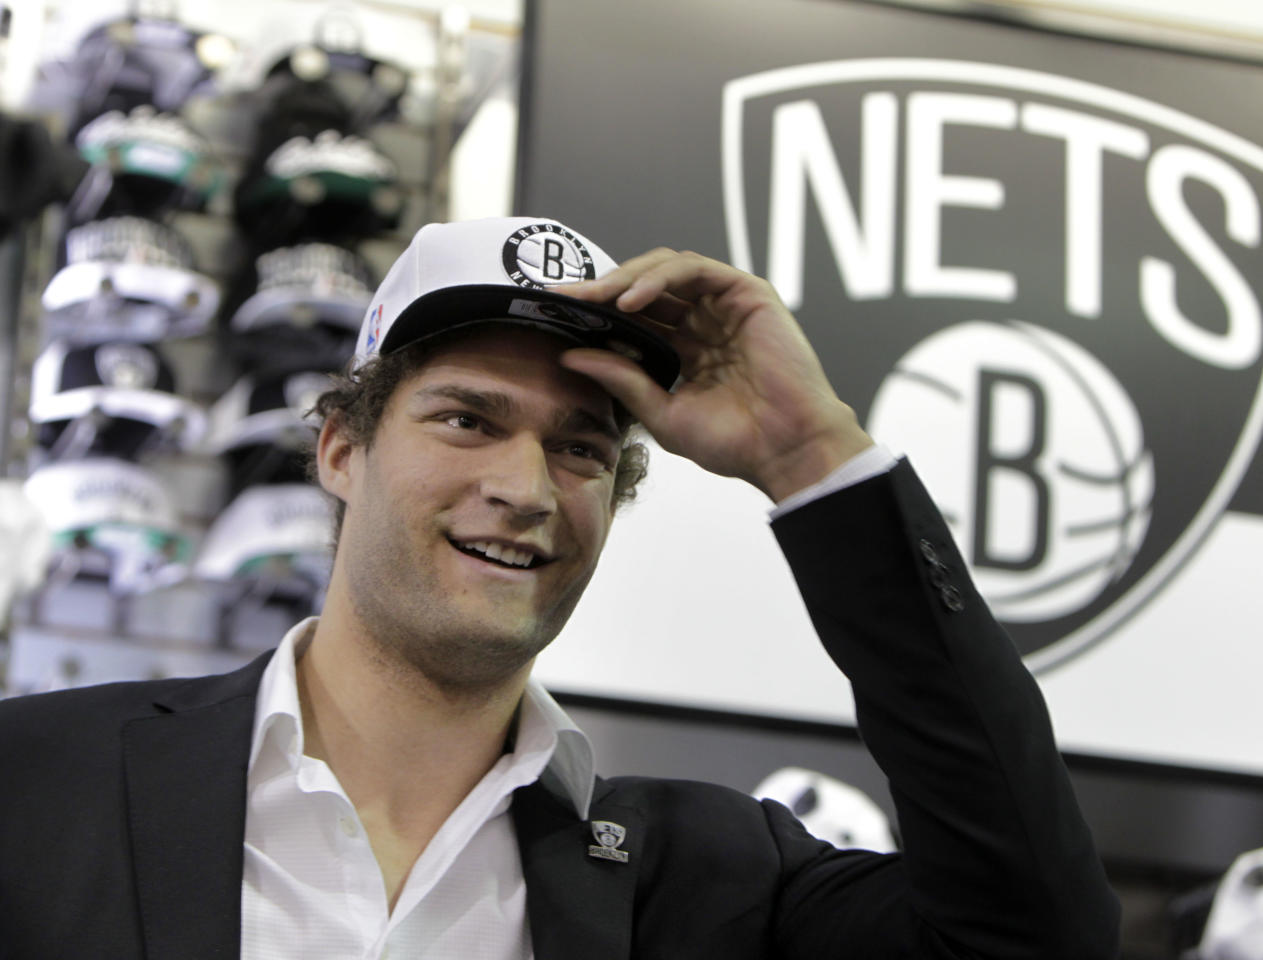 Brooklyn Nets basketball player Brook Lopez tries on a hat with the new Nets' logo during a news conference to unveil the new logos in the Brooklyn borough of New York, Monday, April 30, 2012. The Nets will be moving from New Jersey to the new Barclays Center in Brooklyn, New York for the 2012-2013 NBA basketball season. (AP Photo/Seth Wenig)